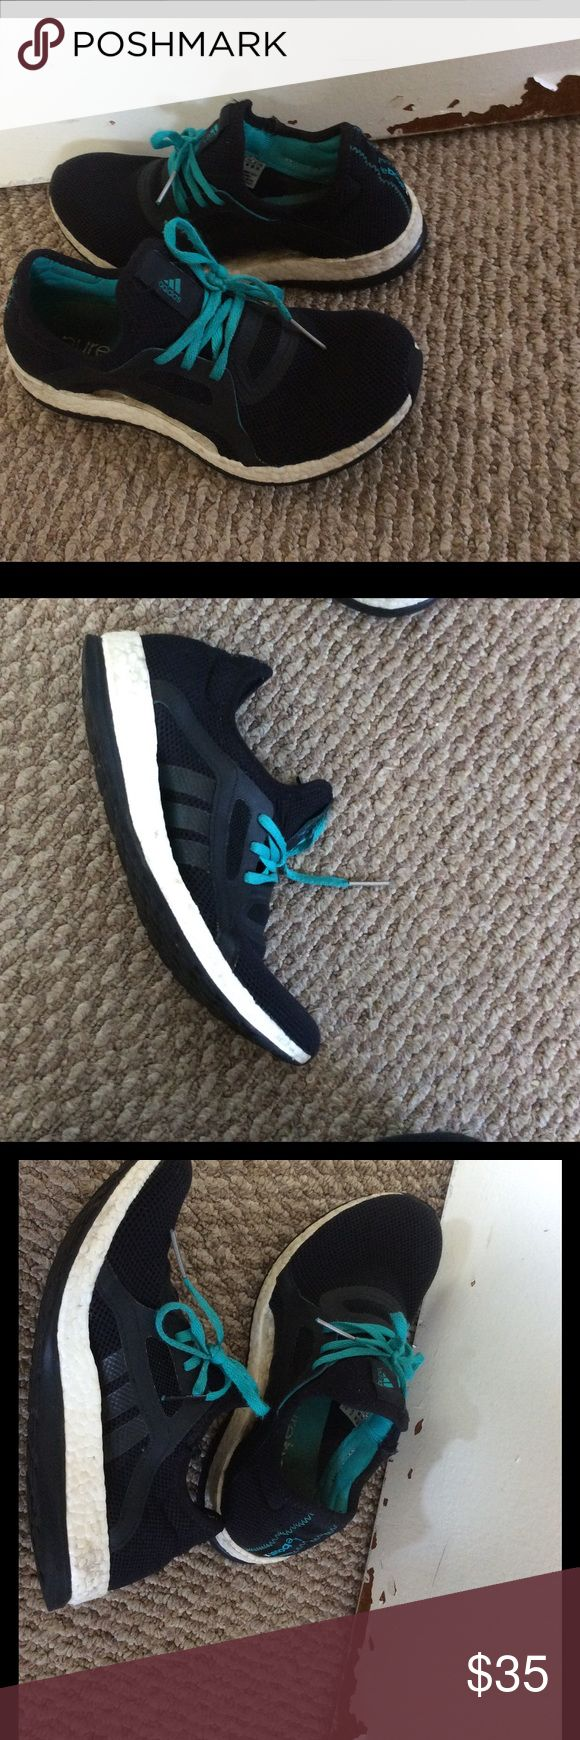 Adidas pure boost black and teal 8 Pure boost in good used condition. Lots of life left, size 8 Adidas Shoes Athletic Shoes